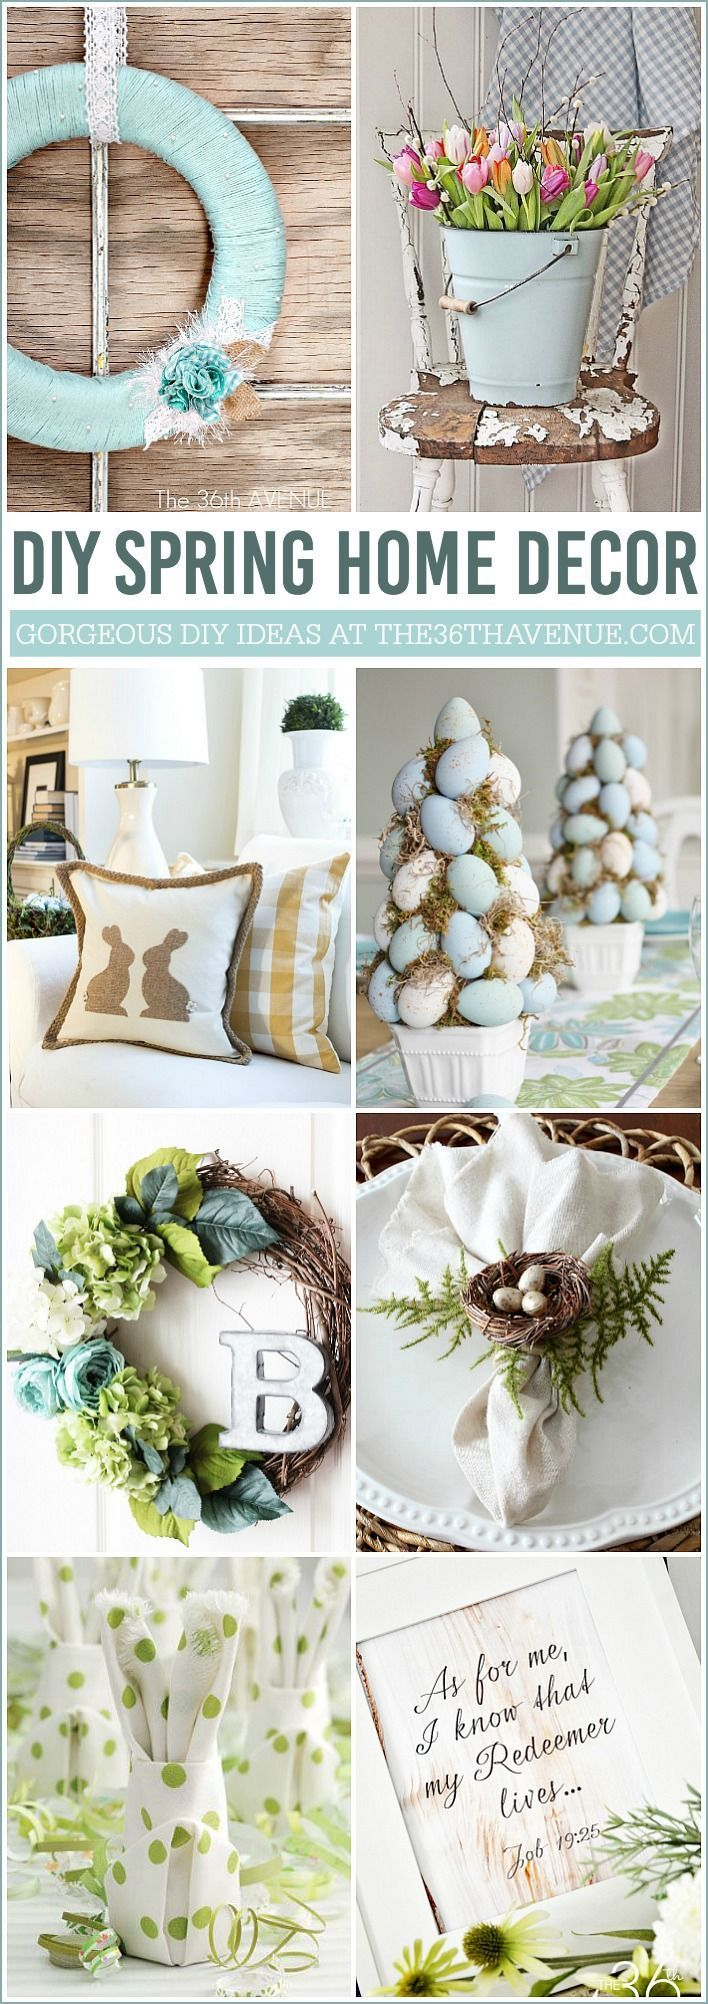 DIY Easter Home Decor Ideas - Beautiful Spring Home Decor Ideas that you can make at home!